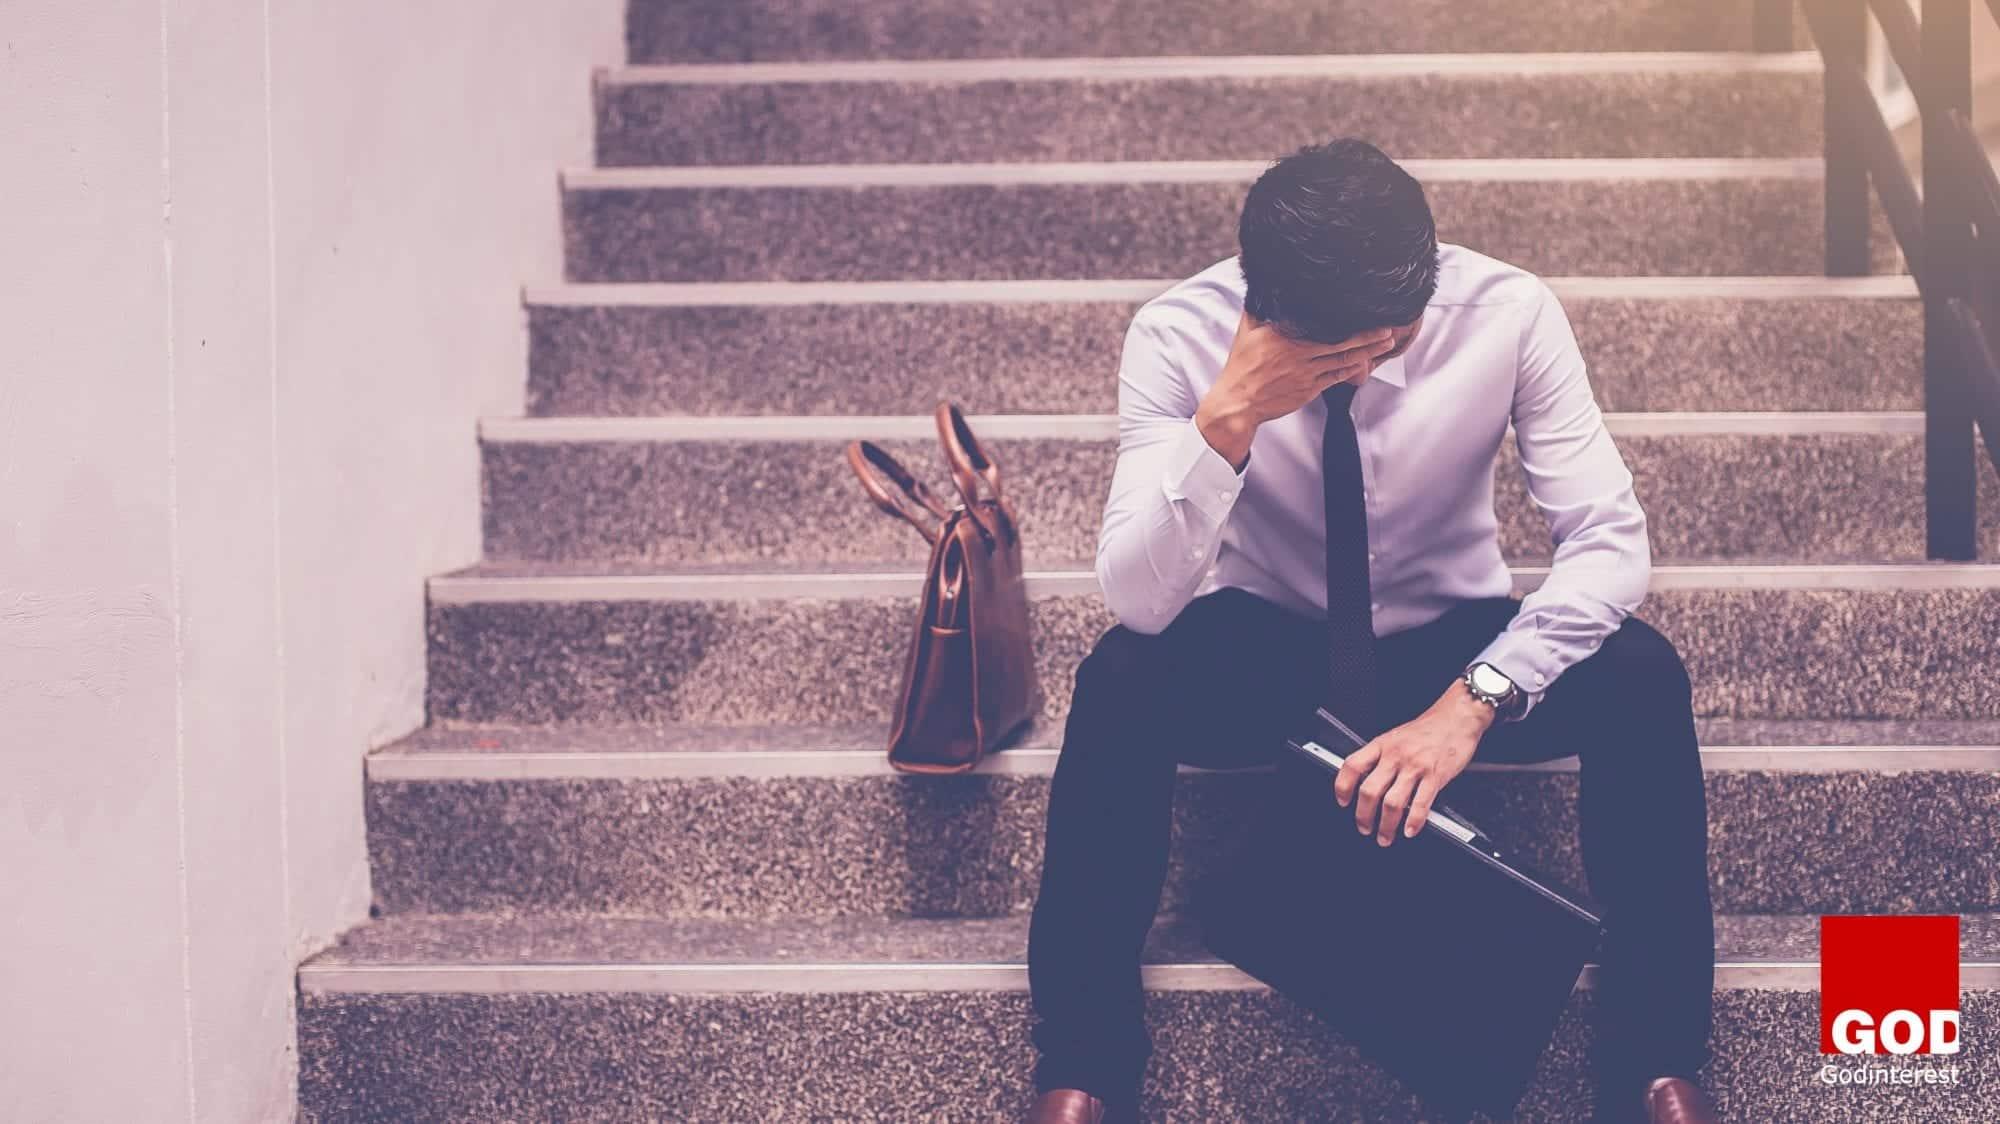 Why 'Coming Out' as a Christian at work is so very hard?, Godinterest Christian Magazine